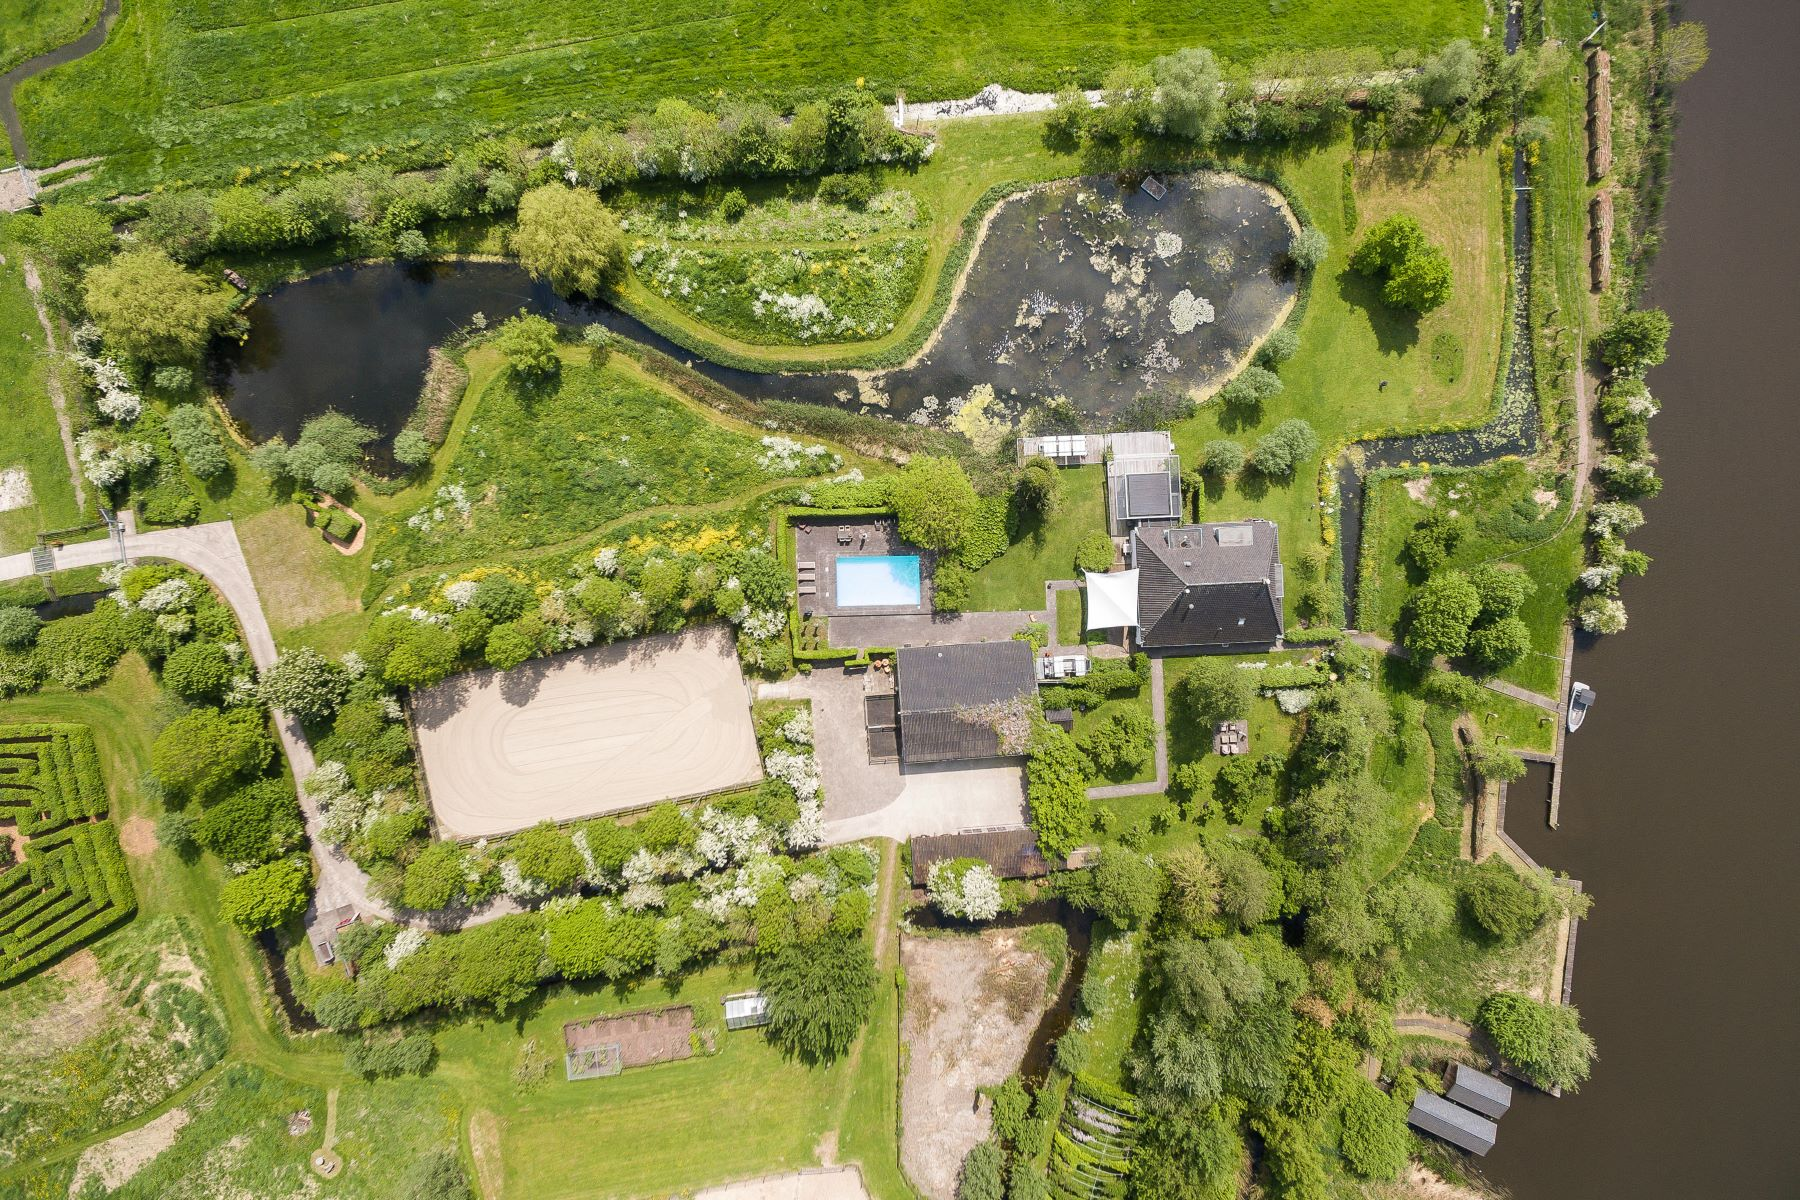 Single Family Home for Sale at Private sale Other North Holland, North Holland Netherlands